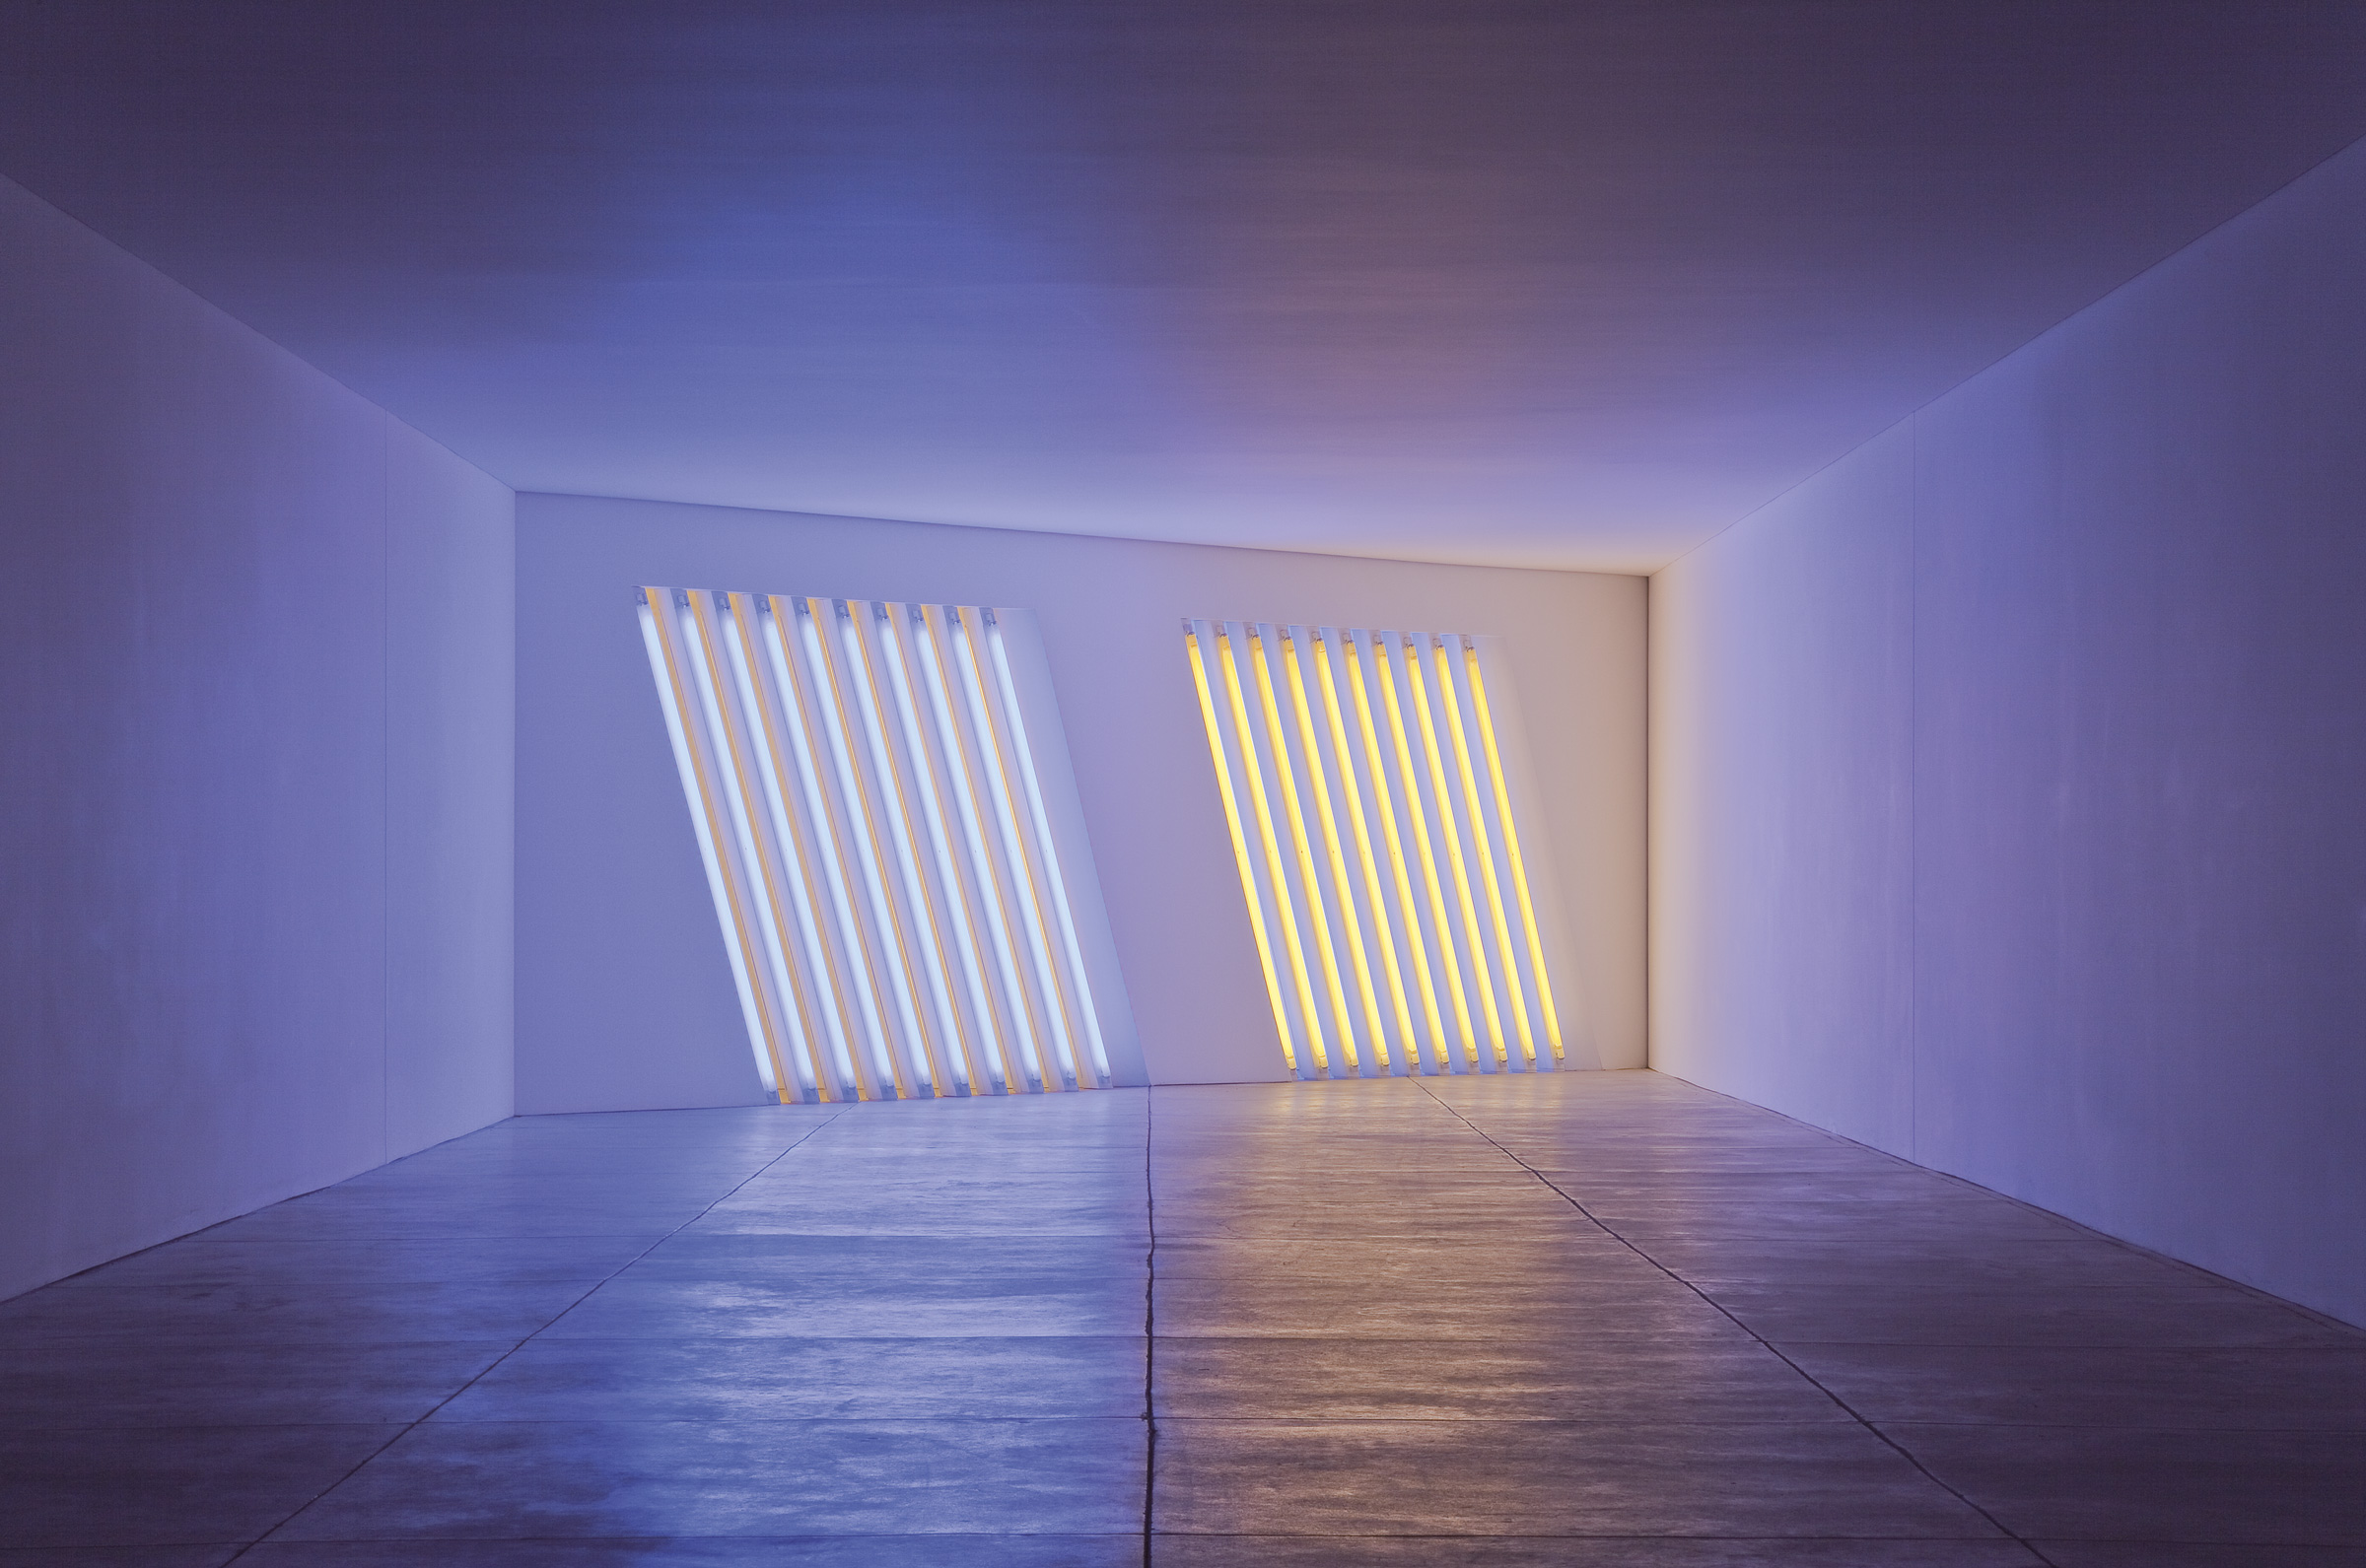 Dan Flavin, untitled (Marfa project) building 4, 1996